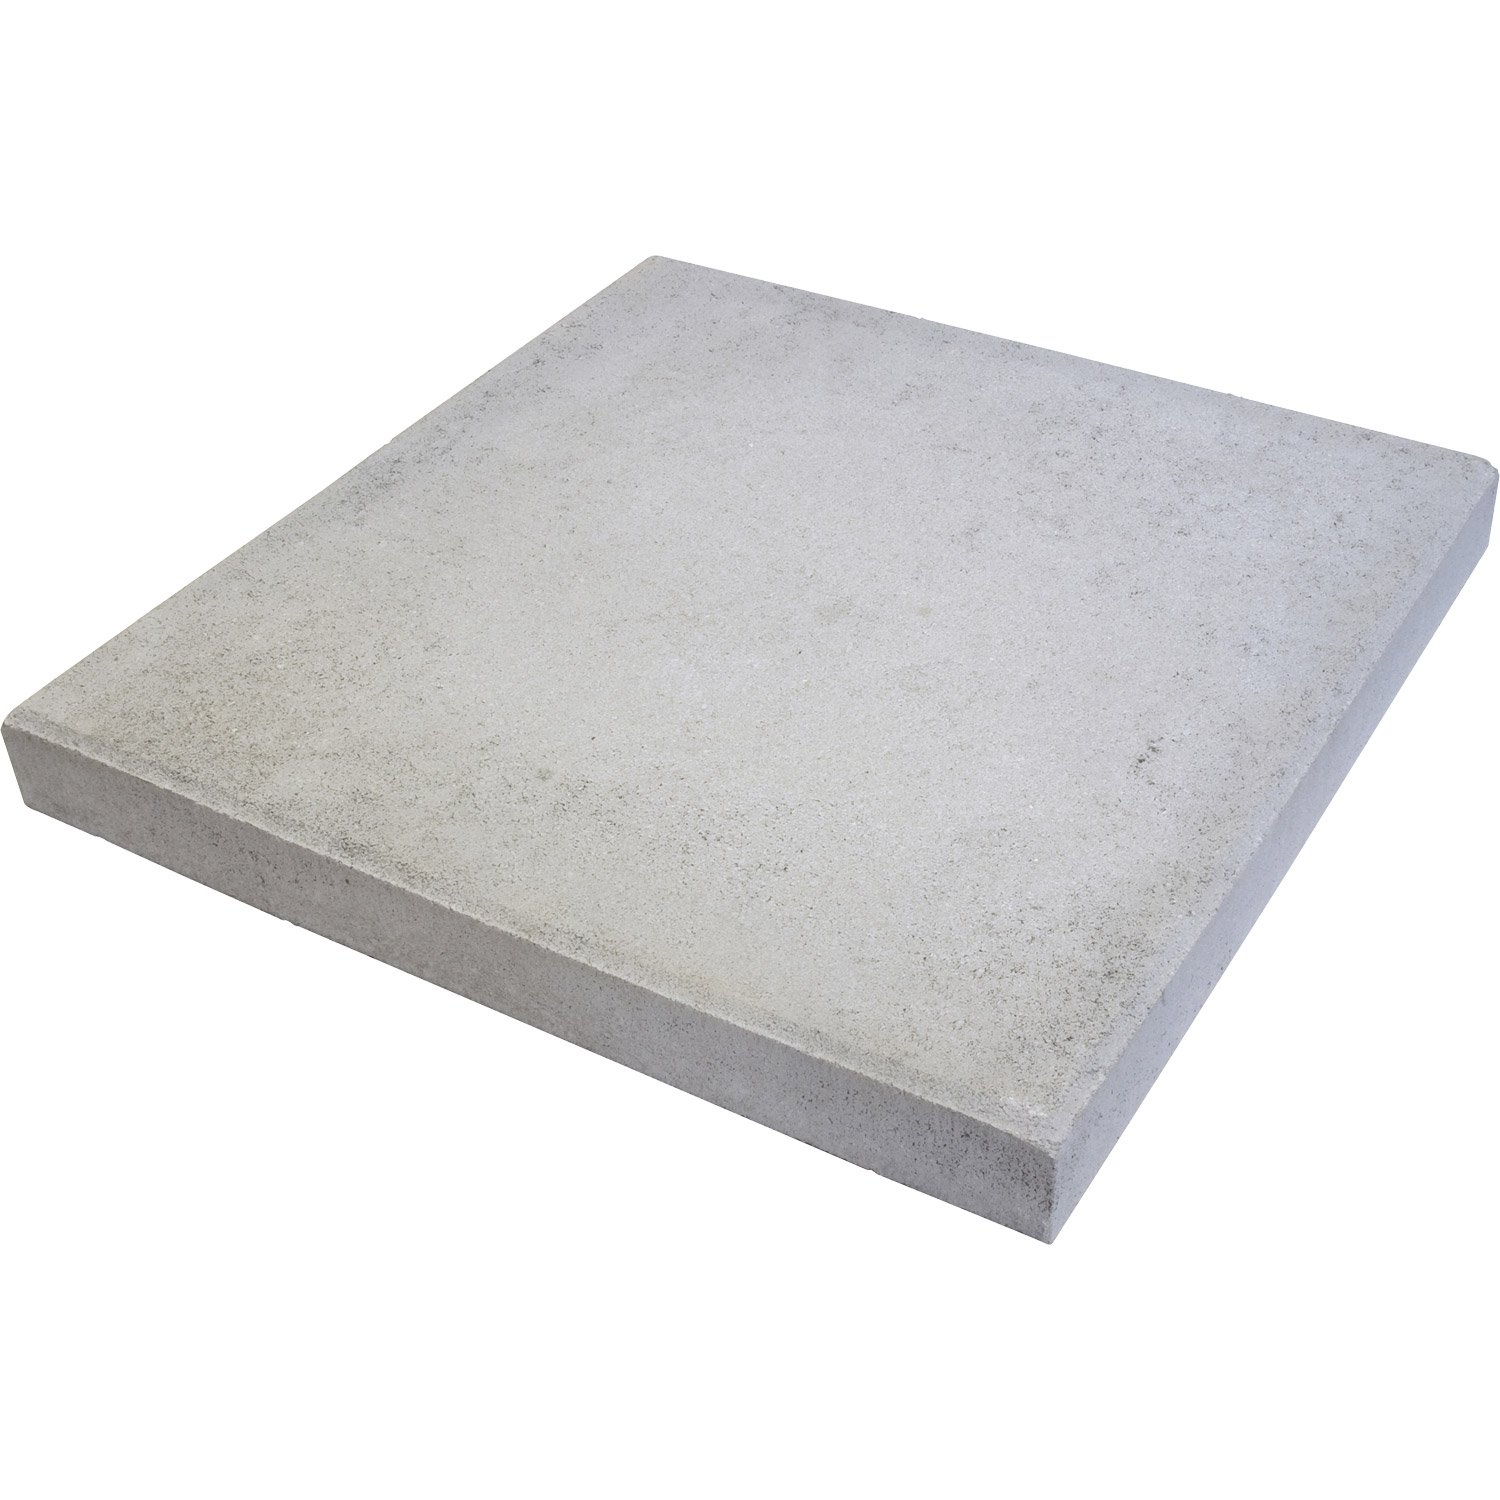 Dalle beton terrasse ma terrasse for Plot beton leroy merlin